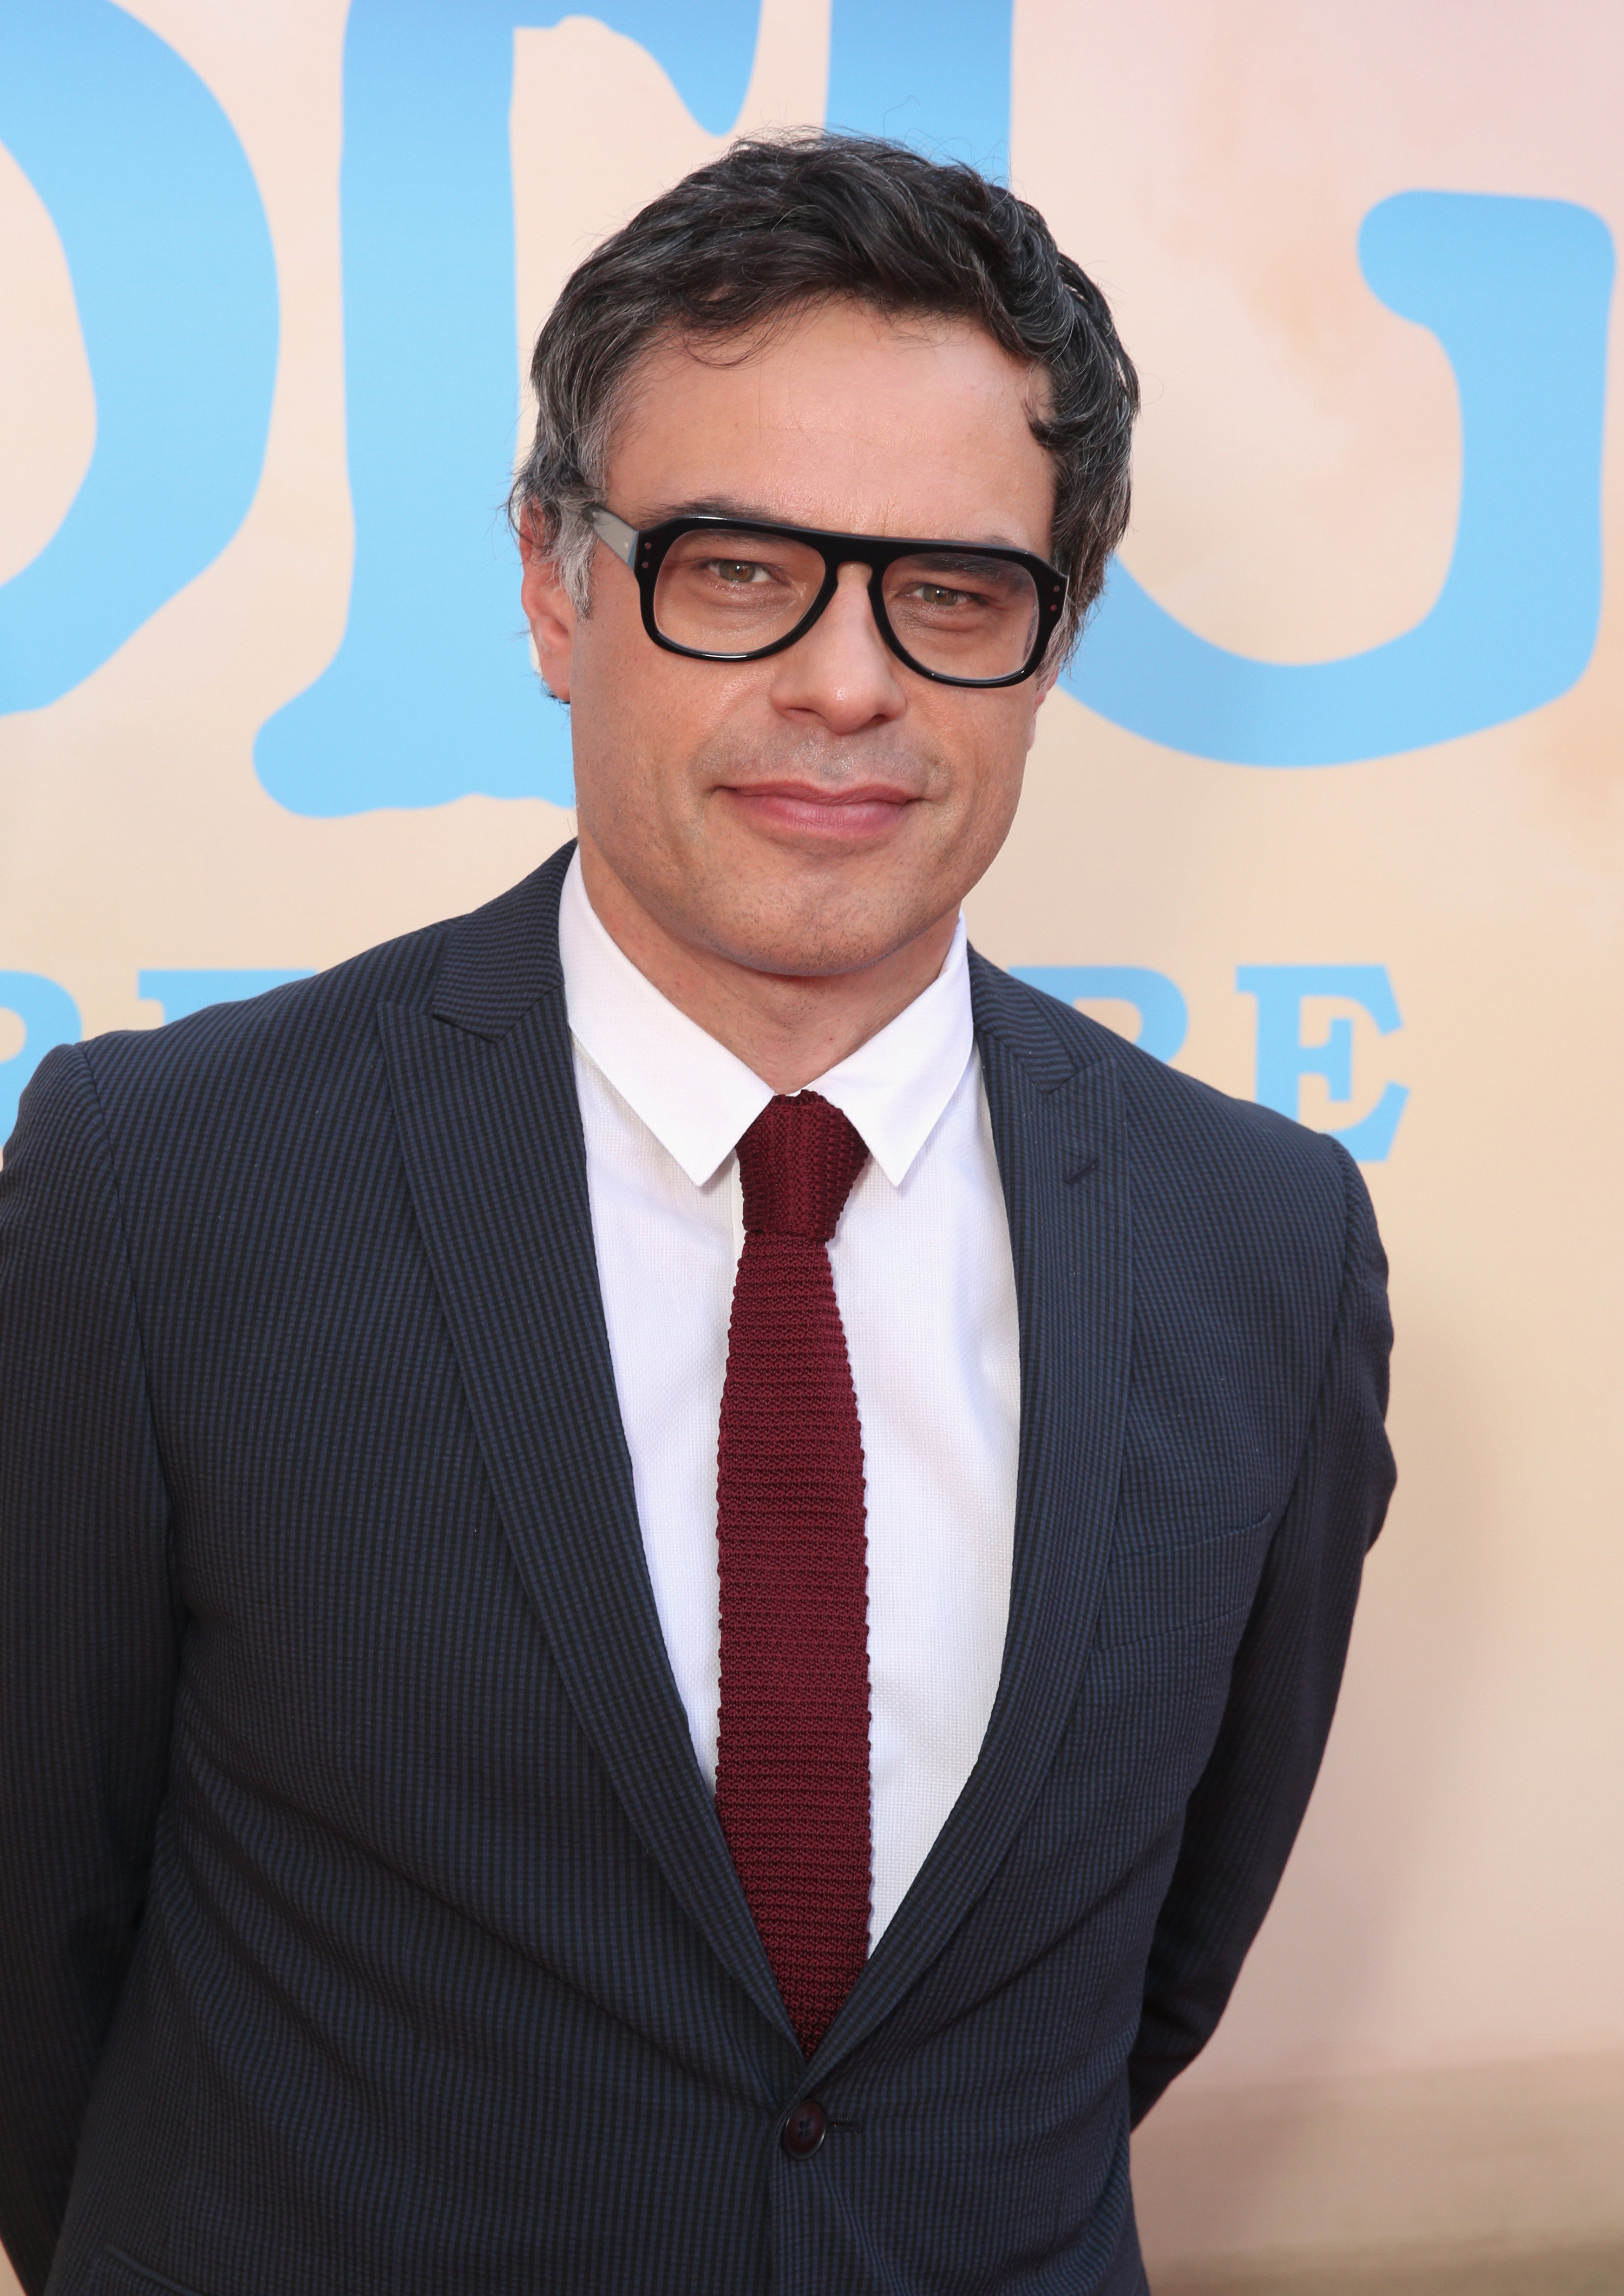 Jemaine Clement smiles with his hands clasped behind his back as he wears a black suit and red tie